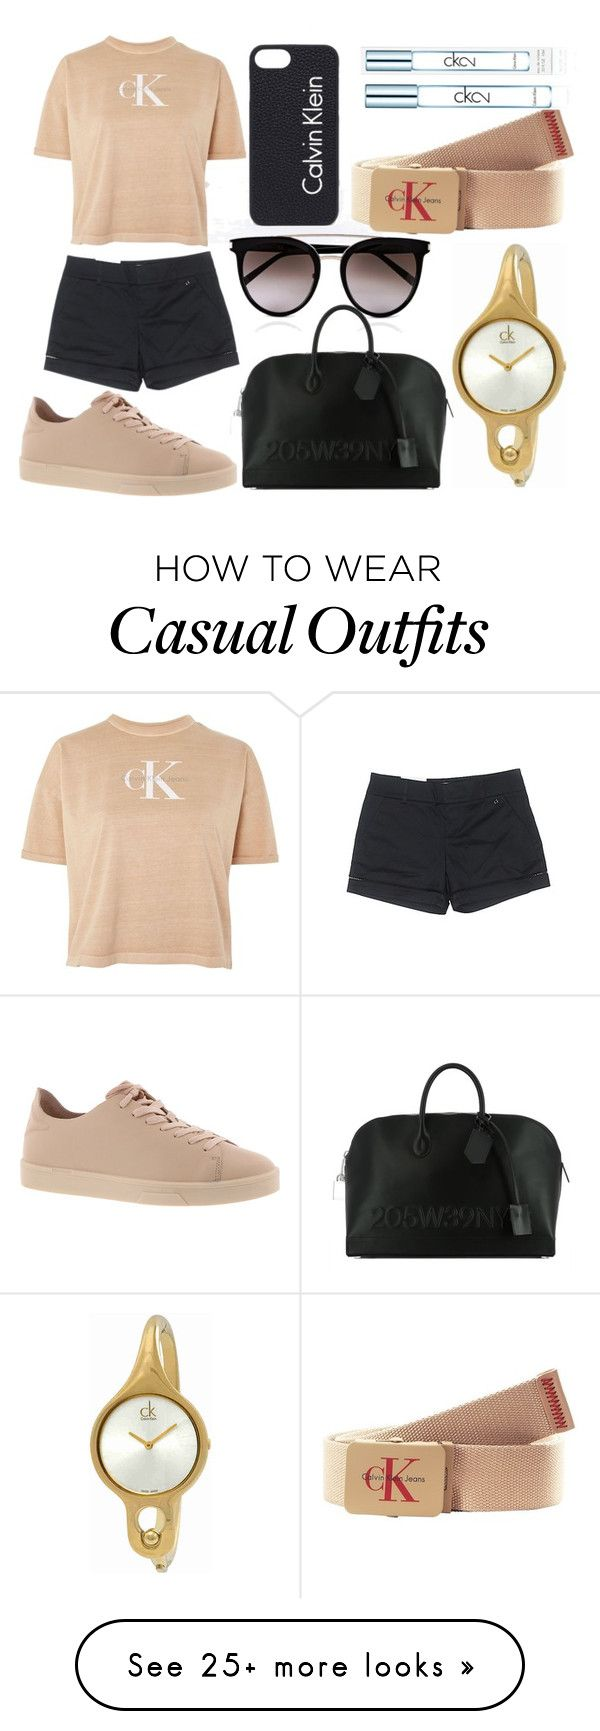 """Casual Look With Calvin Klein"" by mackenzieq on Polyvore featuring Calvin Klein"